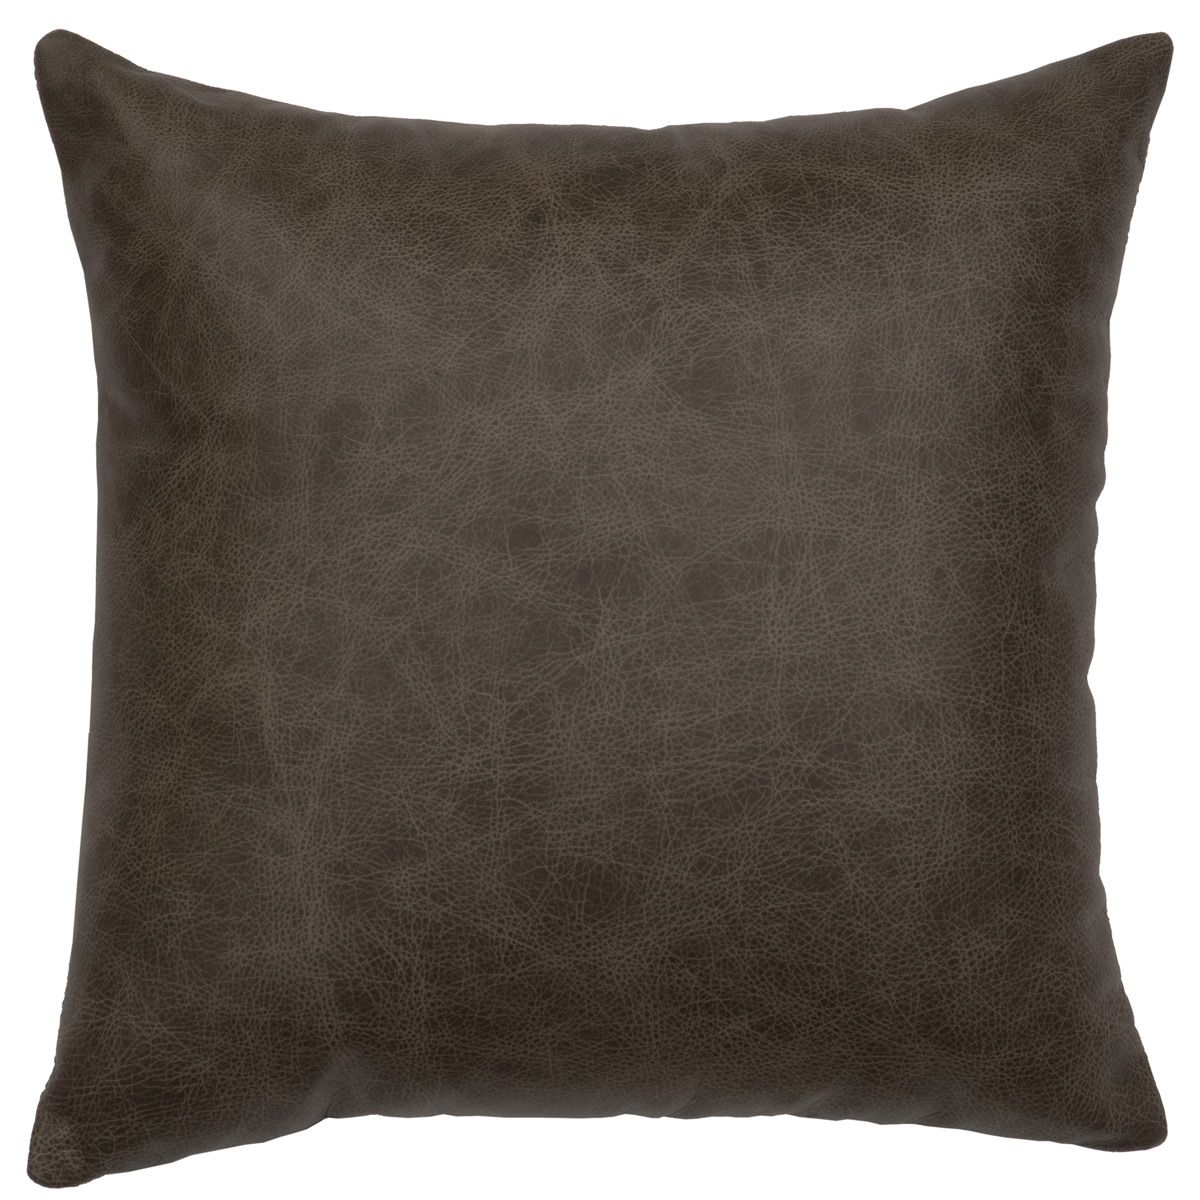 Luminaria Leather Pillow - Leather Back - 16 x 16